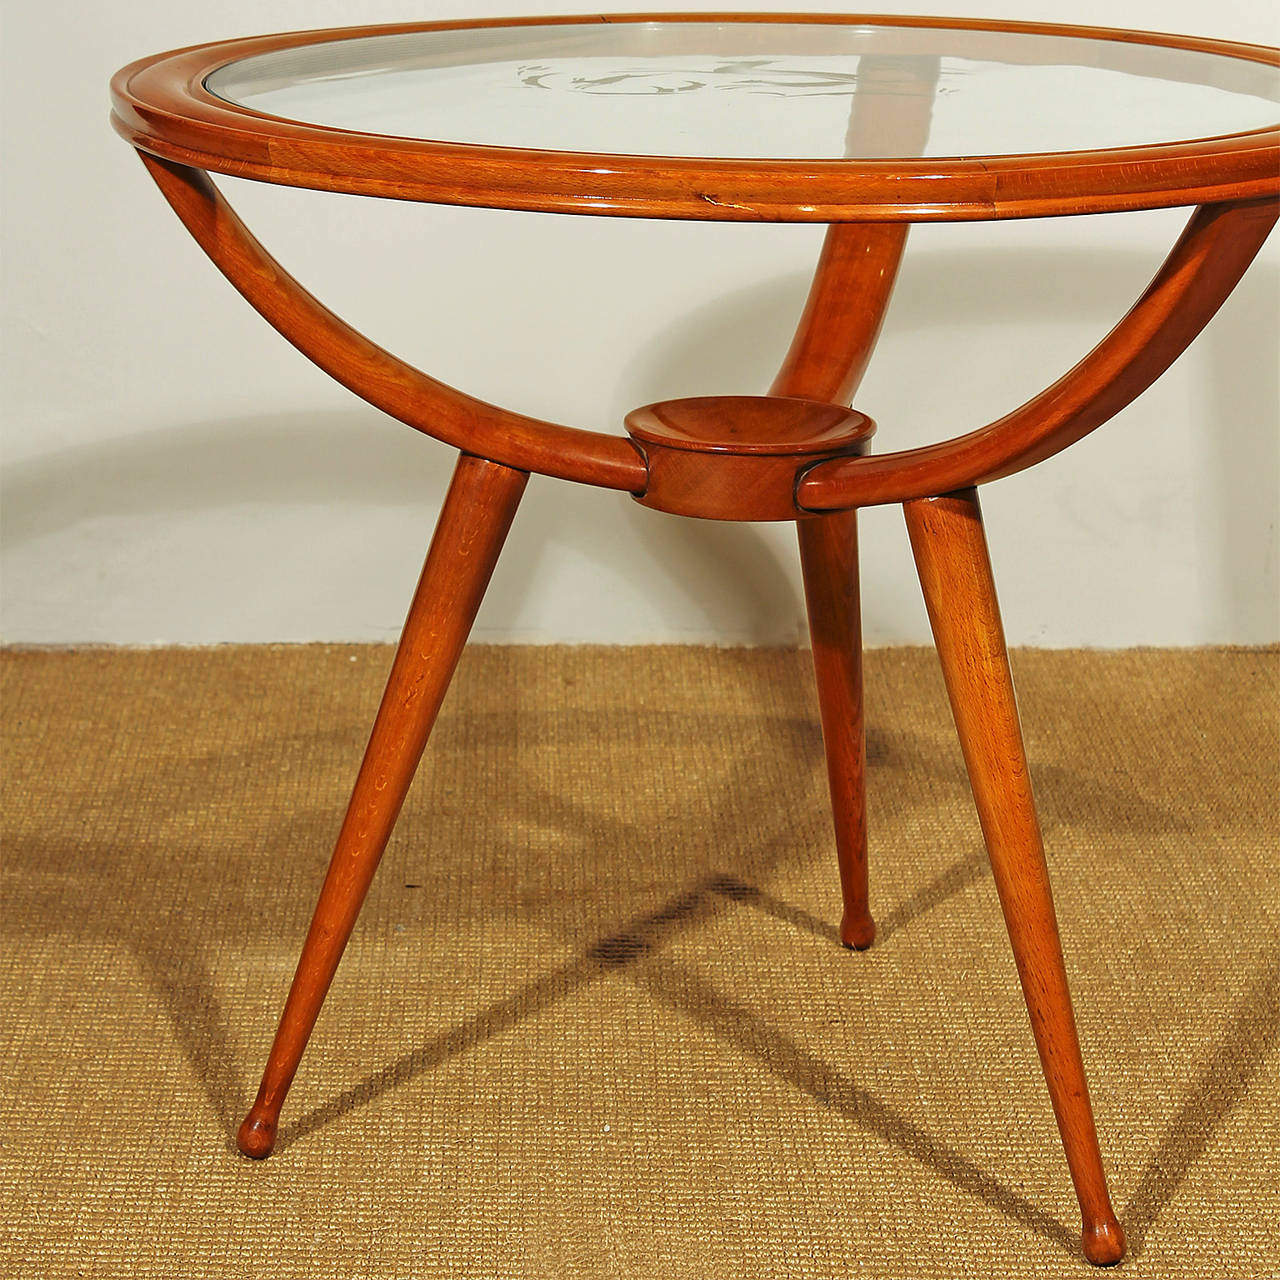 Round Coffee Table Uk Sale: 1940s Round Tripod Side Or Coffee Table, Beechwood